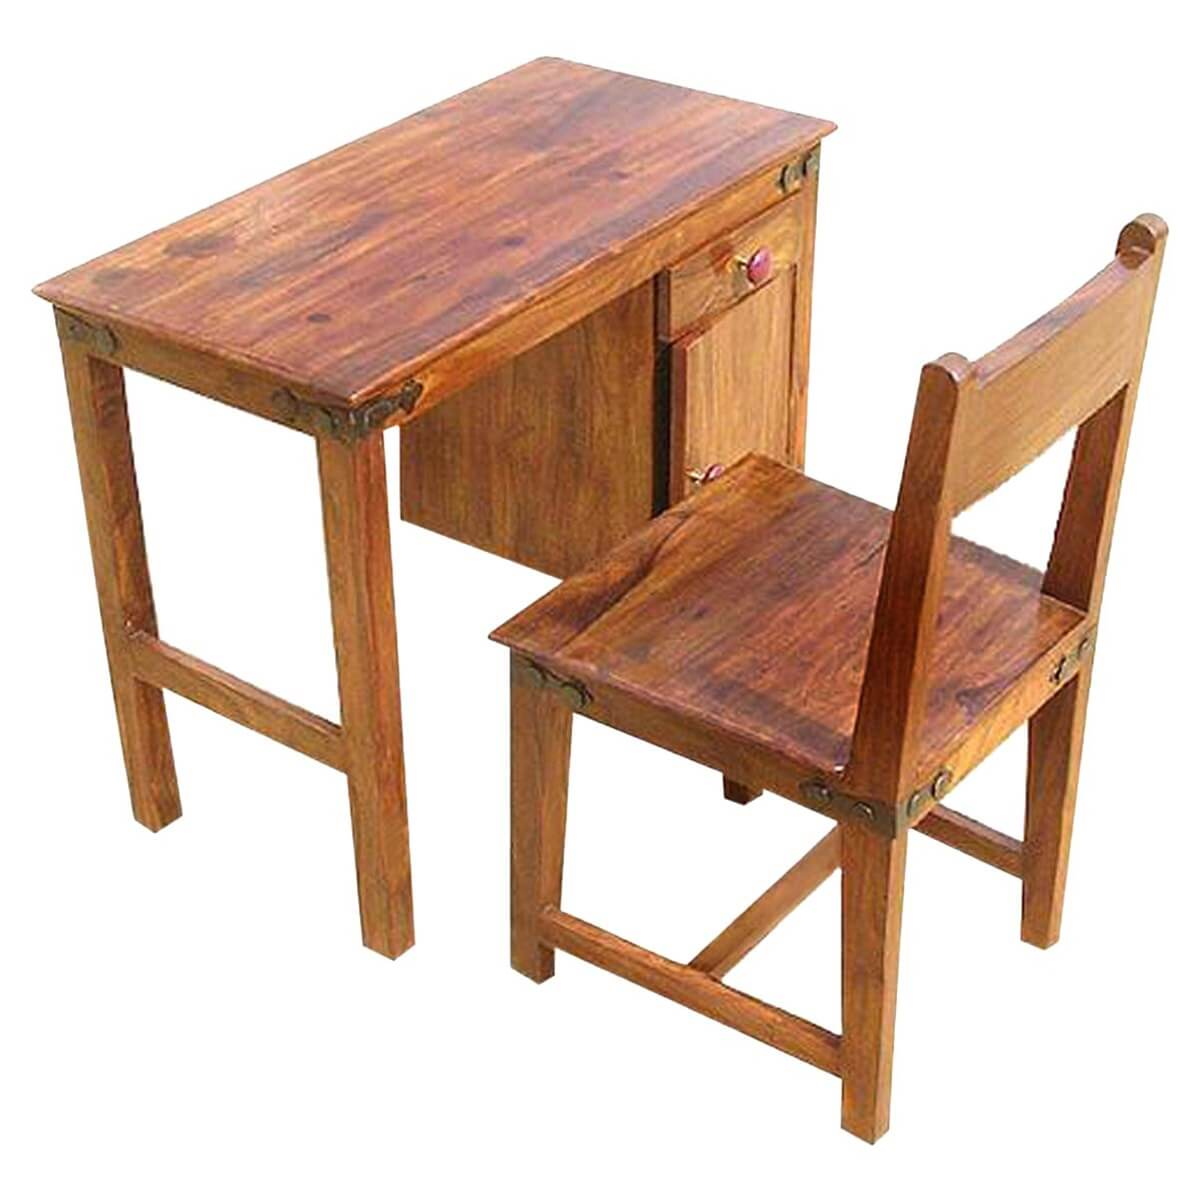 Study Table Chair Set : Solid Wood Student Writing Study Table Desk with Chair Set